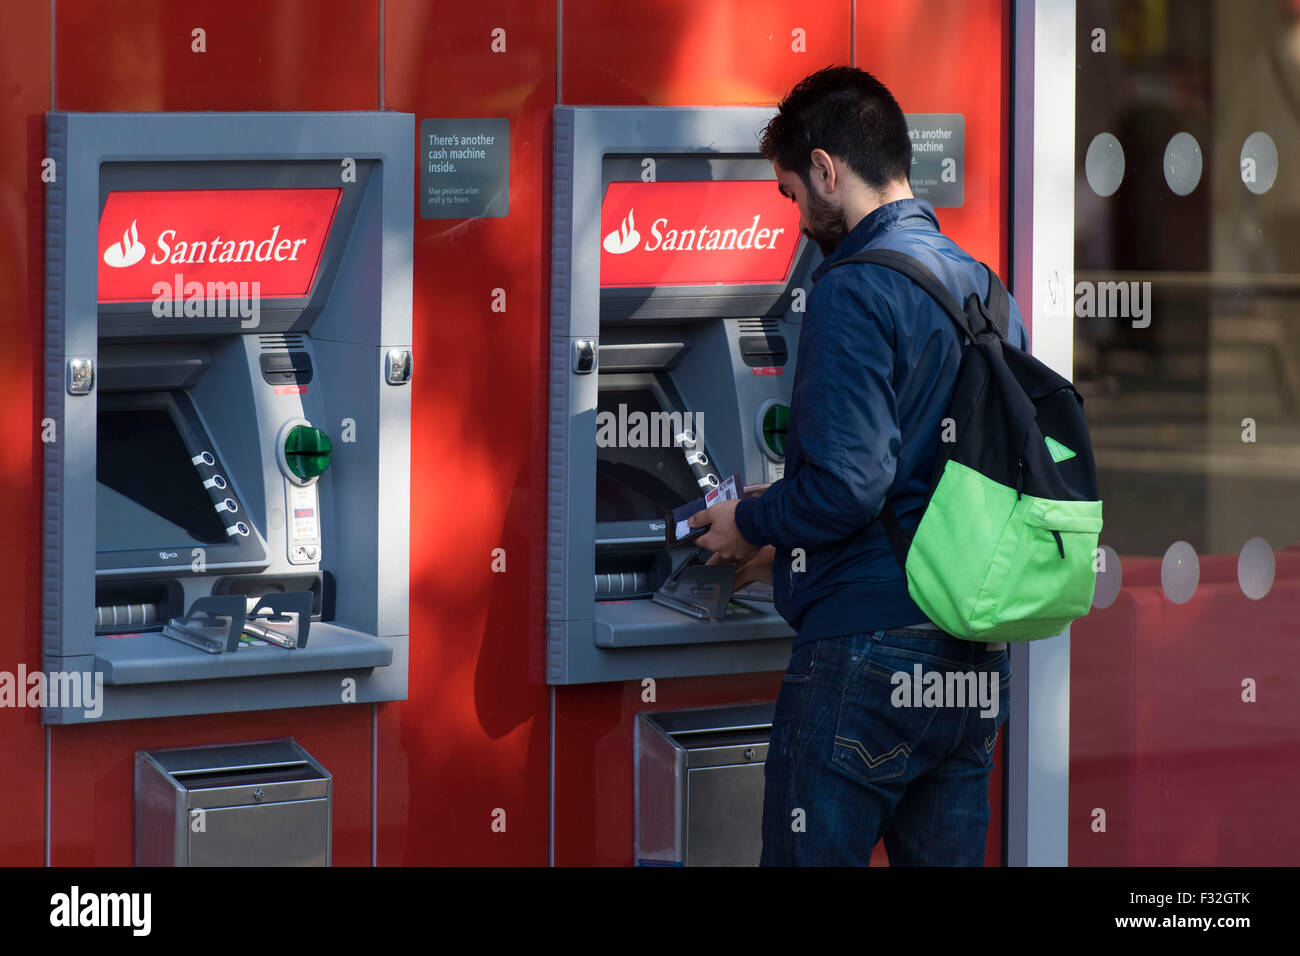 A Santander cash point (ATM) on the high street. - Stock Image